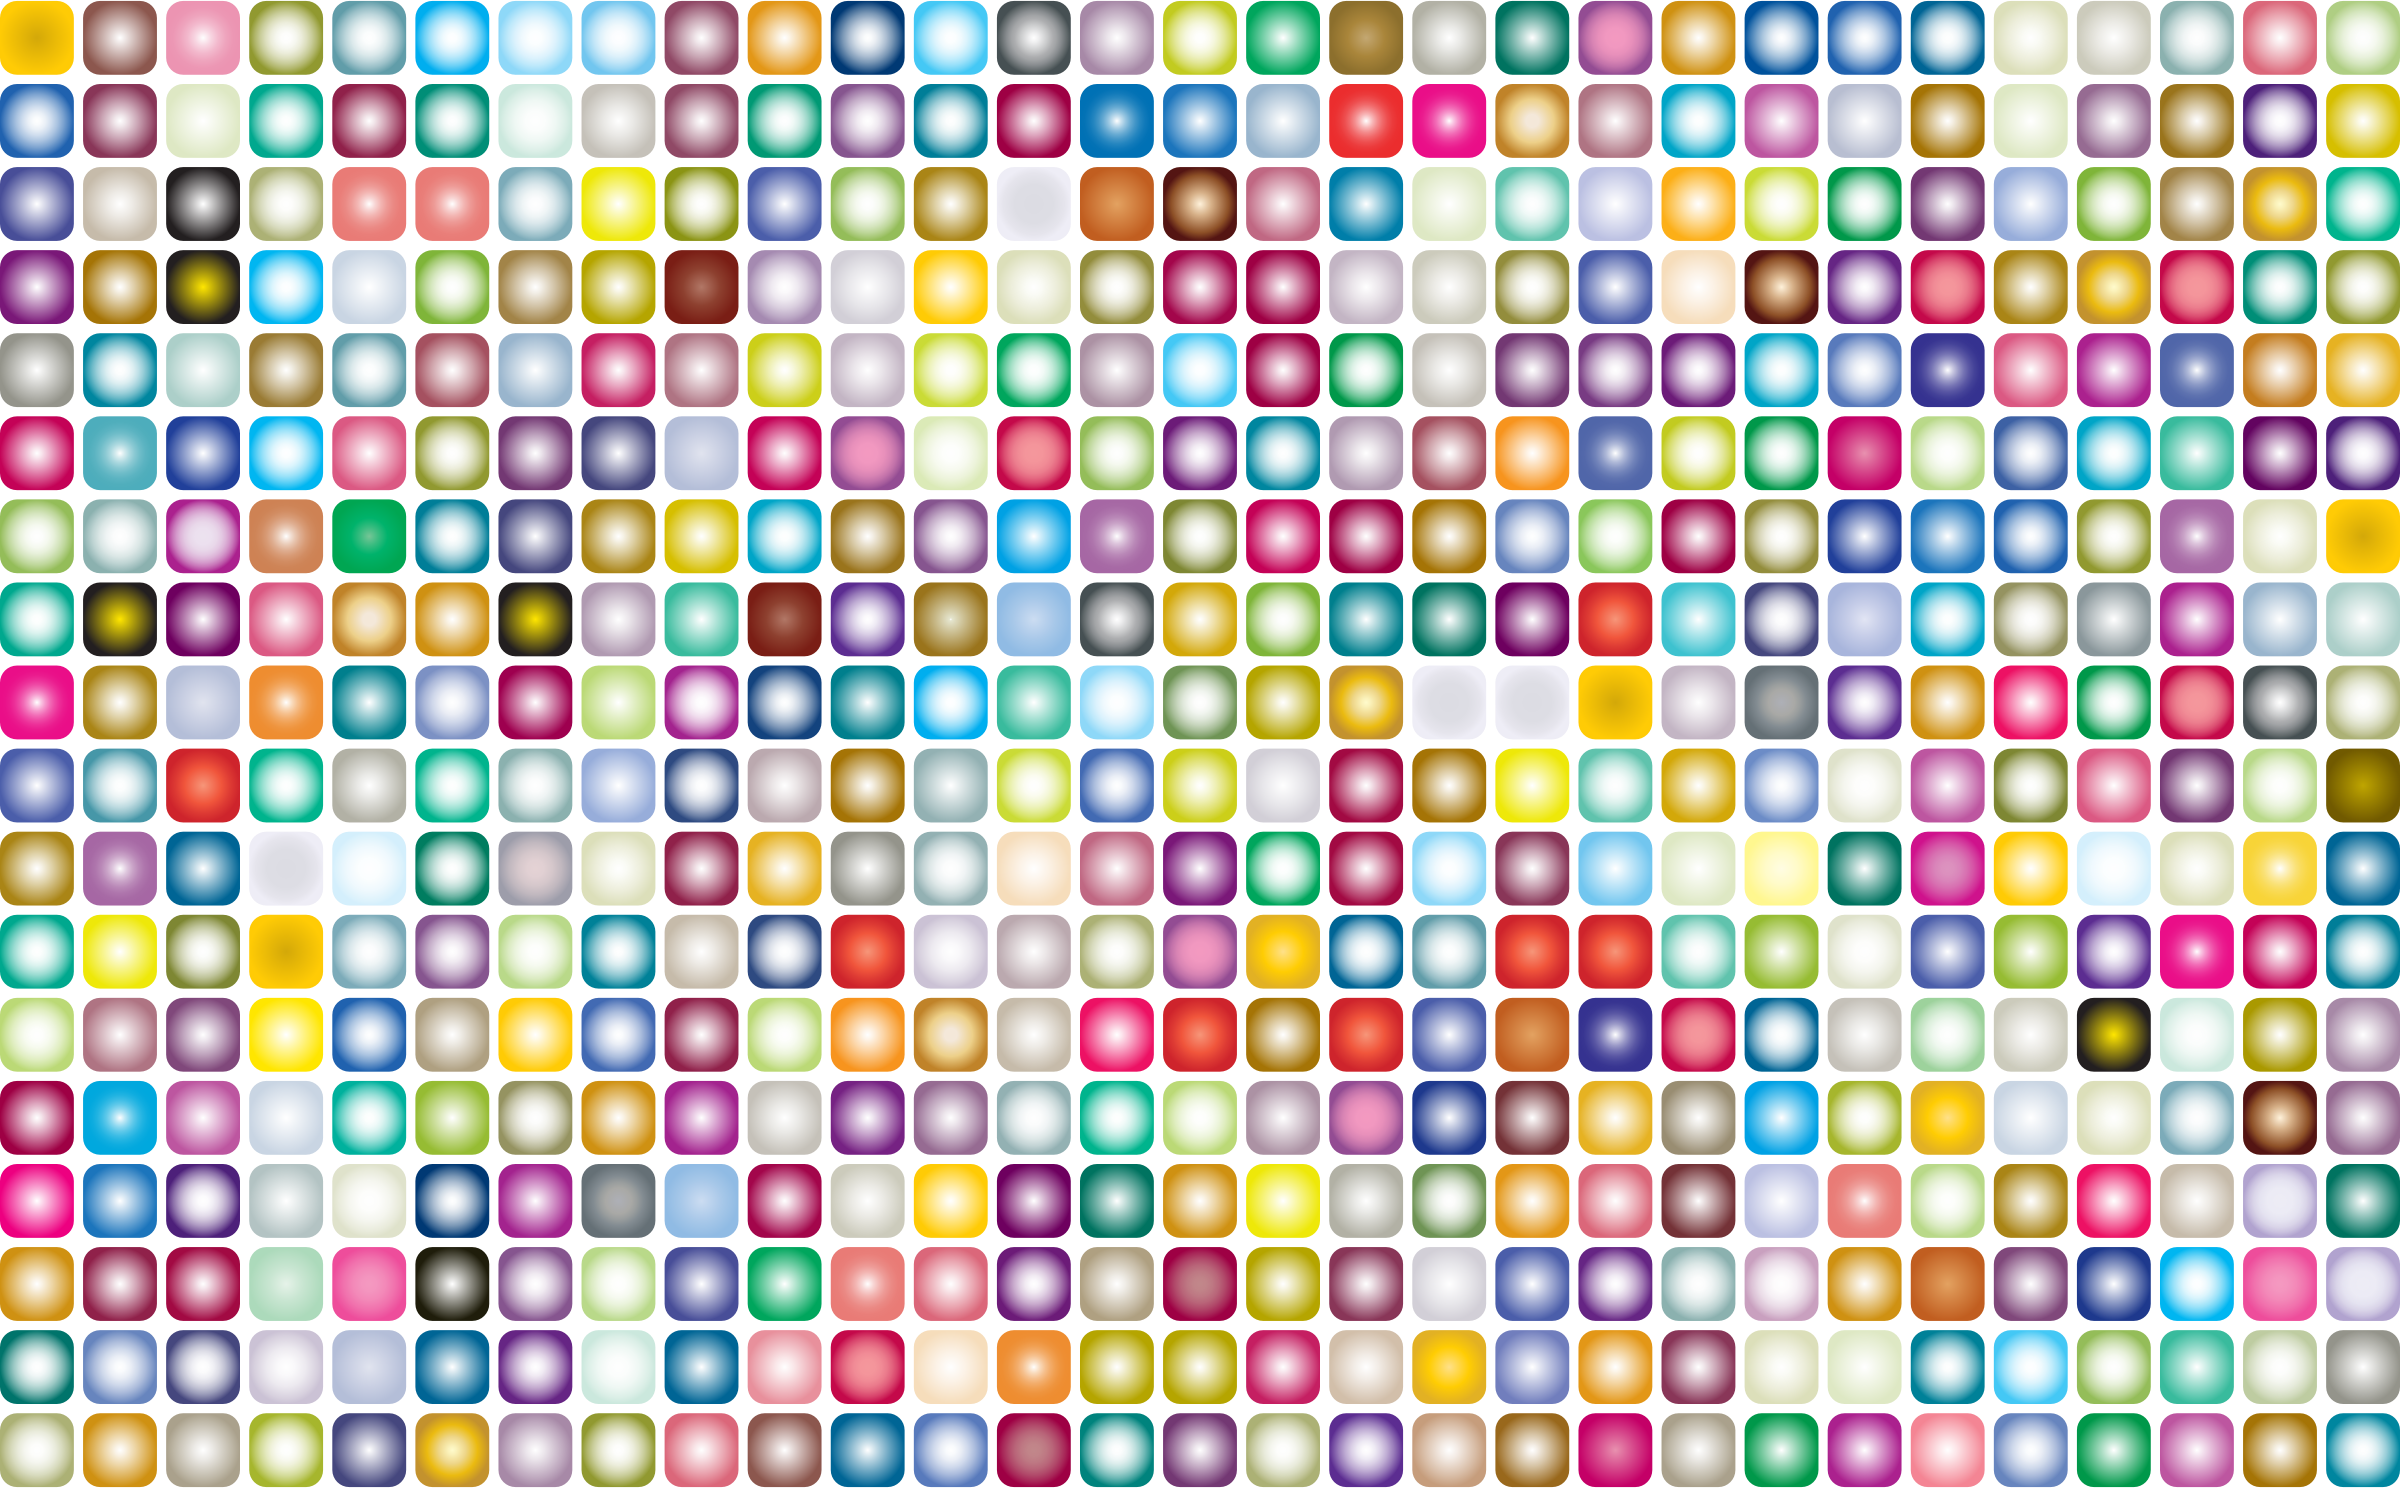 Prismatic Rounded Squares Grid 2 by GDJ